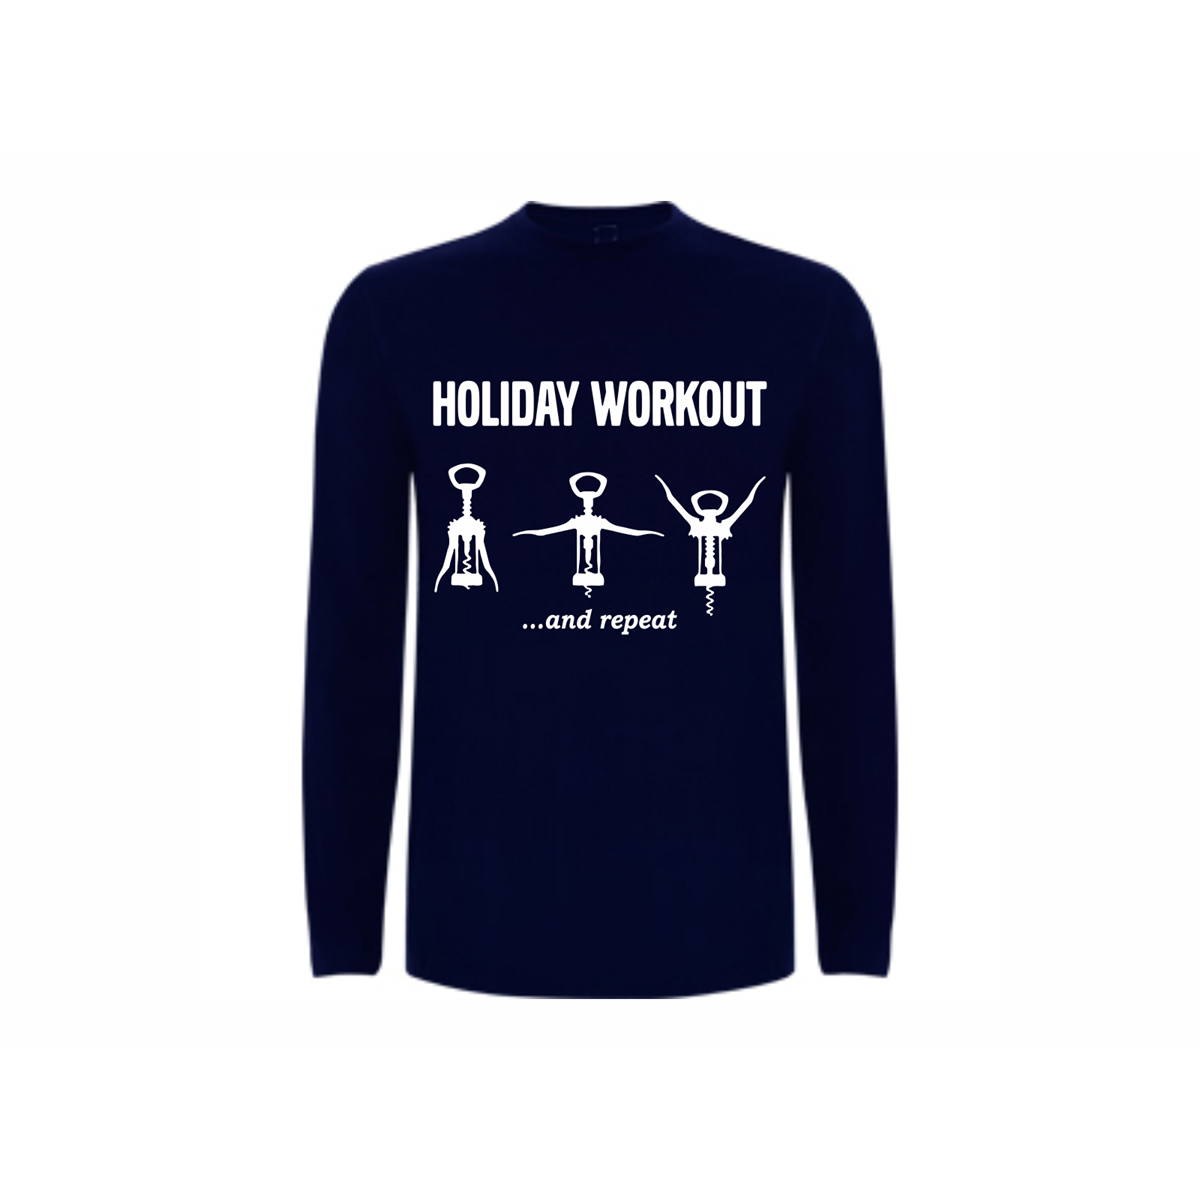 T Shirts With Workout Sayings Just B Cause